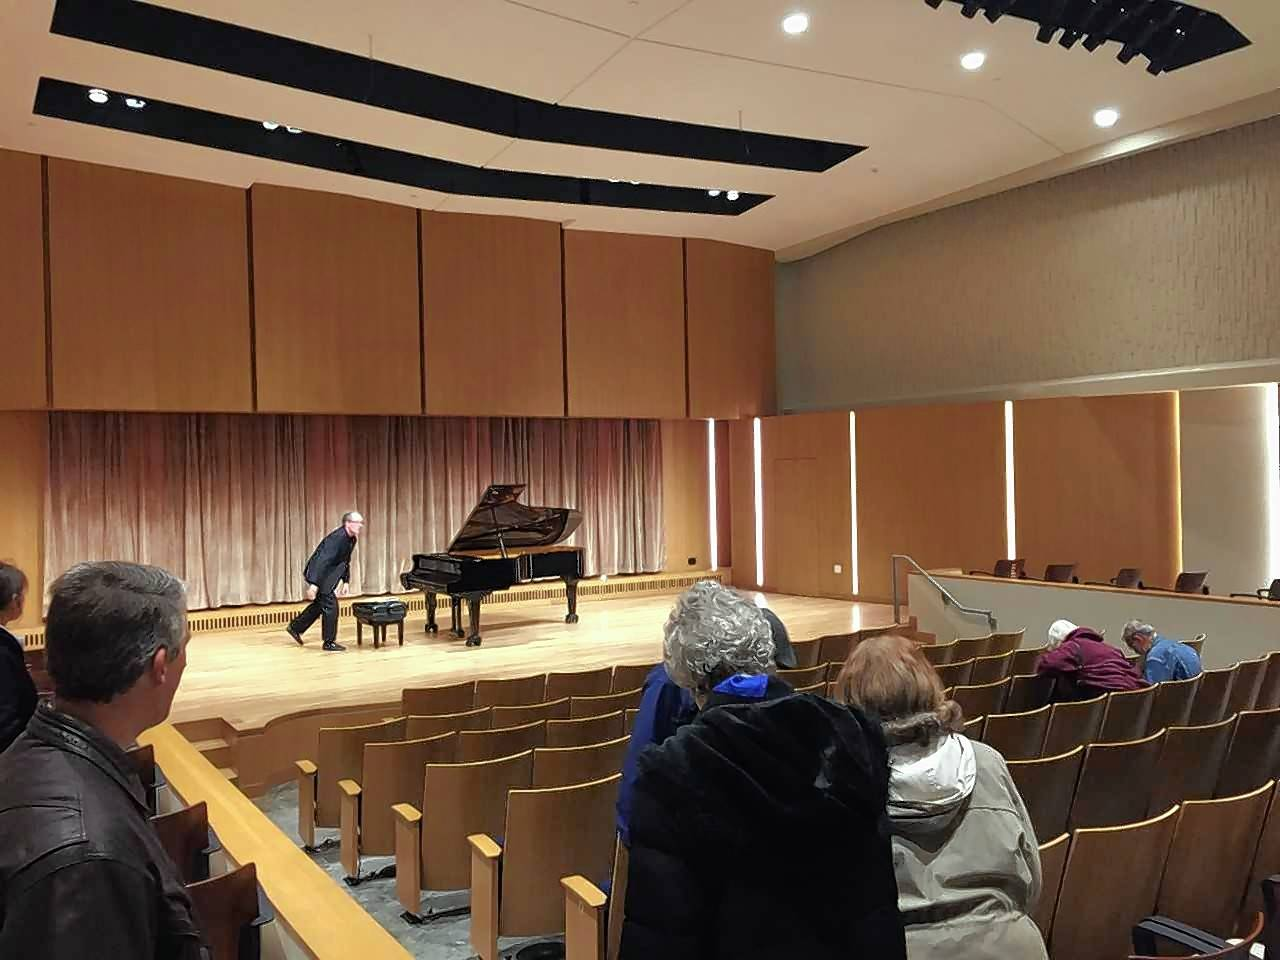 The newly renovated Armerding Center for Music and the Arts includes a new 110-seat recital hall at Wheaton College.